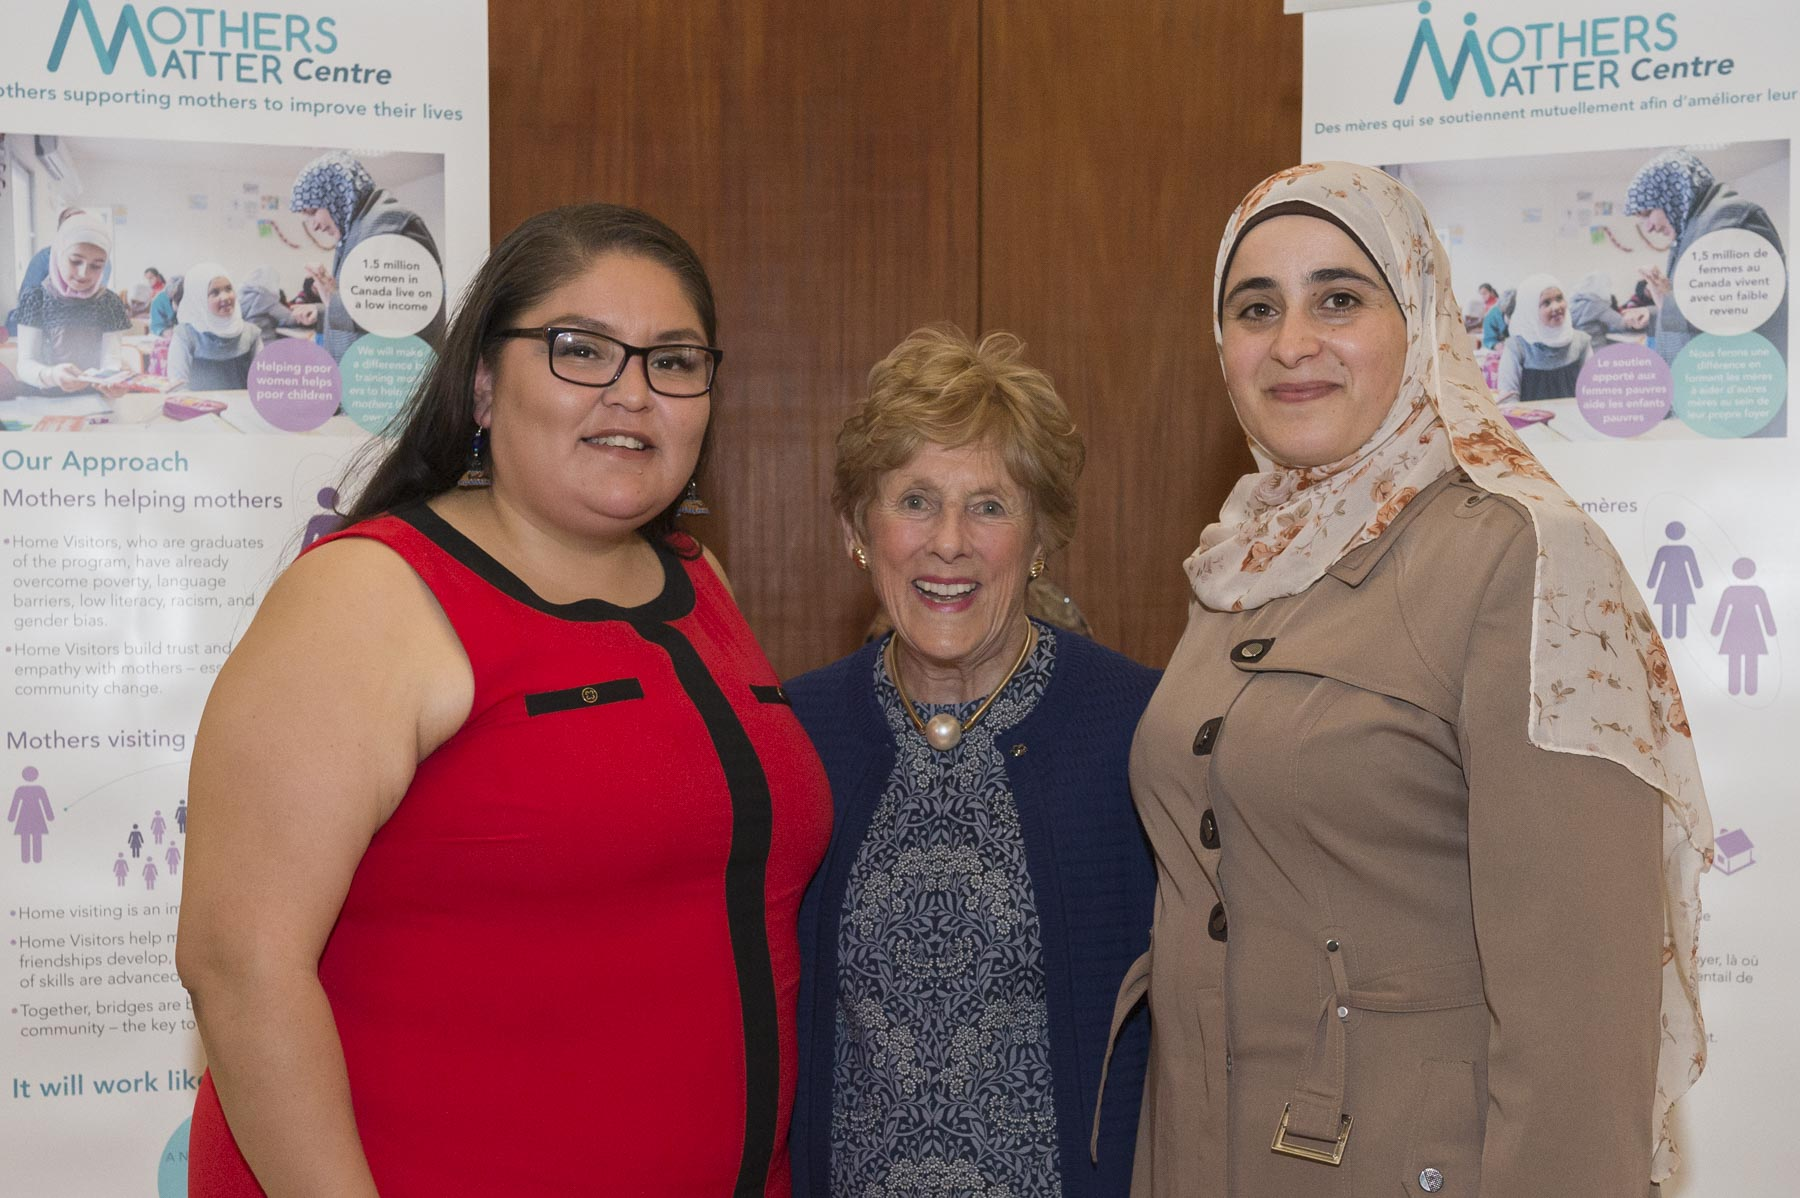 Ms. Johnston with the other two 2017 recipients: Tracy Joseph, an Aboriginal HIPPY mother from Vancouver on the left and Mayssa Haj Ali, a refugee mother from HIPPY Ottawa on the right.